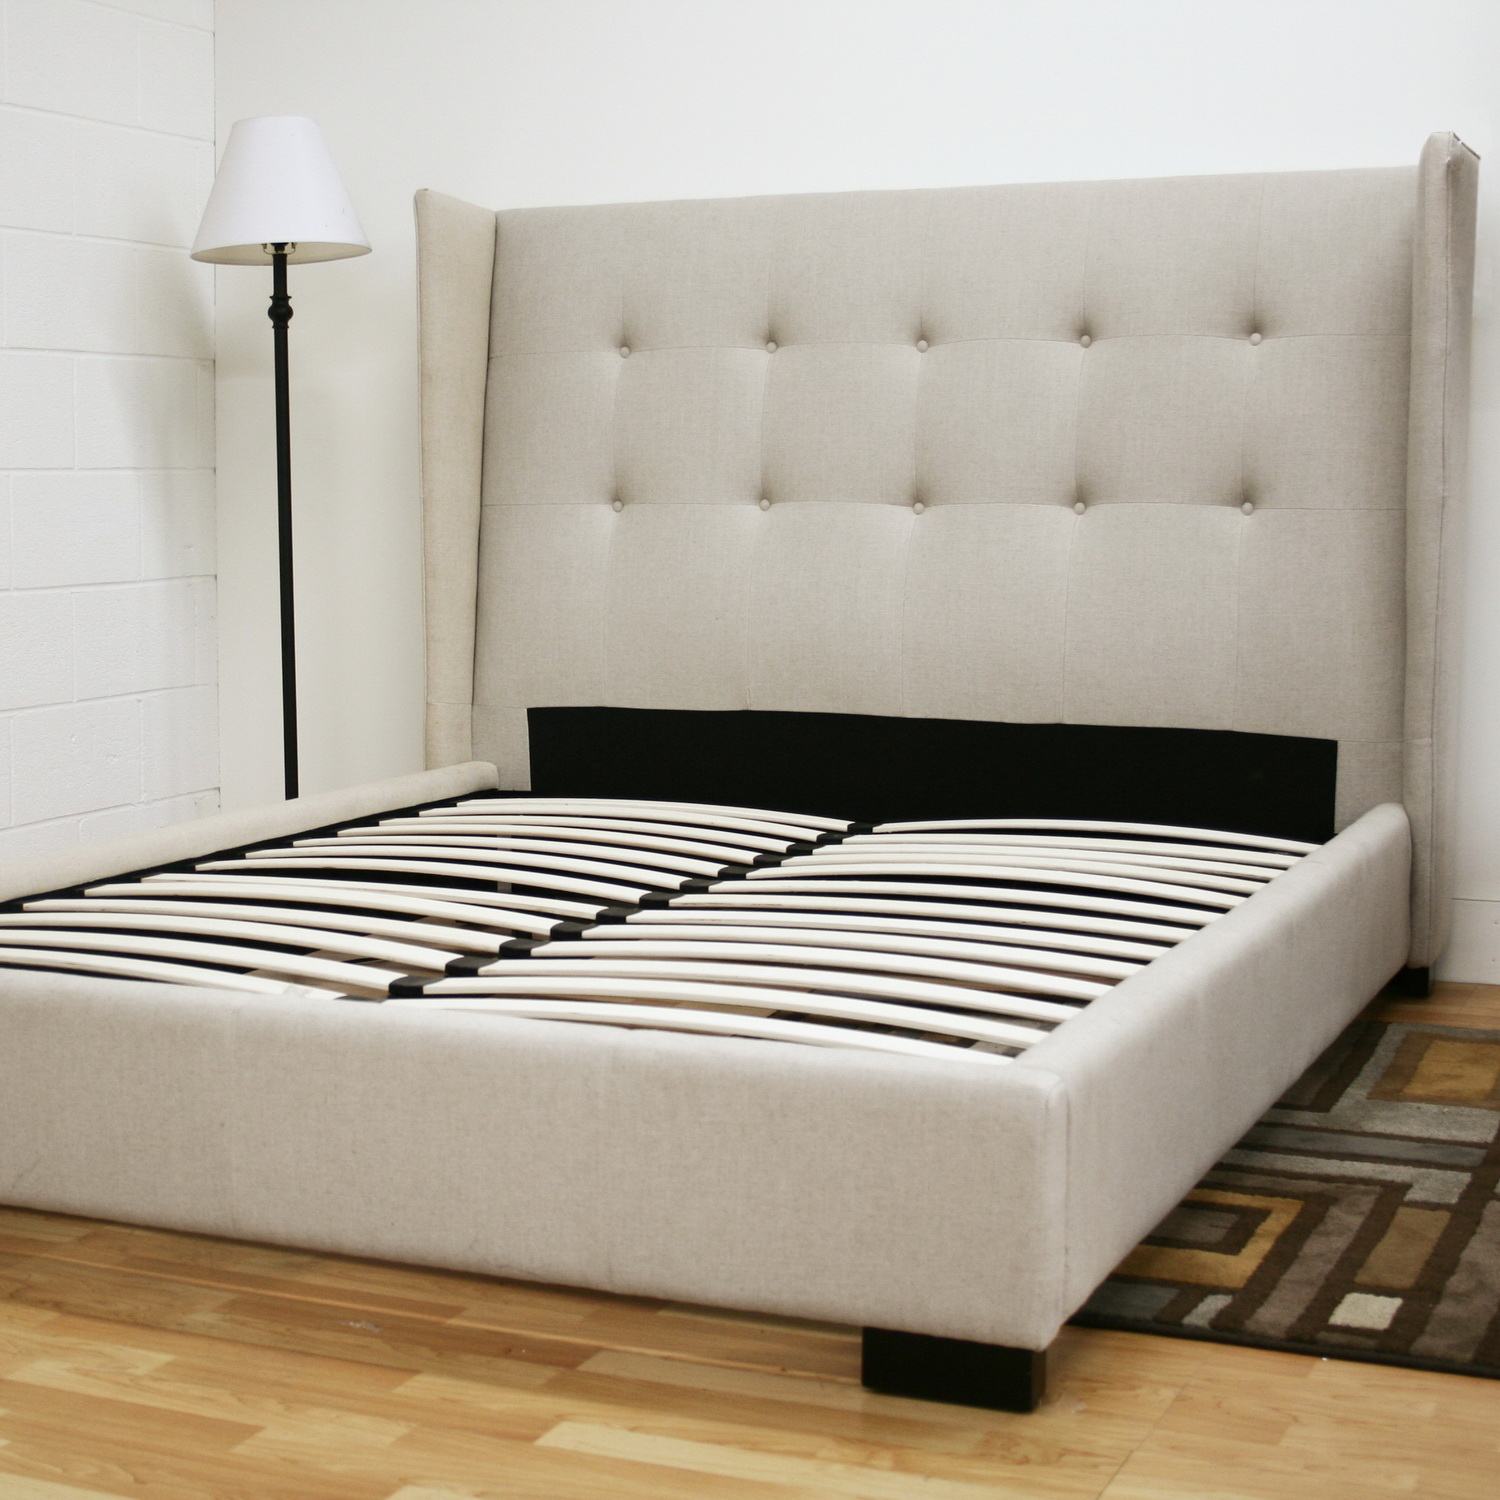 Diy platform bed with upholstered headboard quick for Upholstered beds